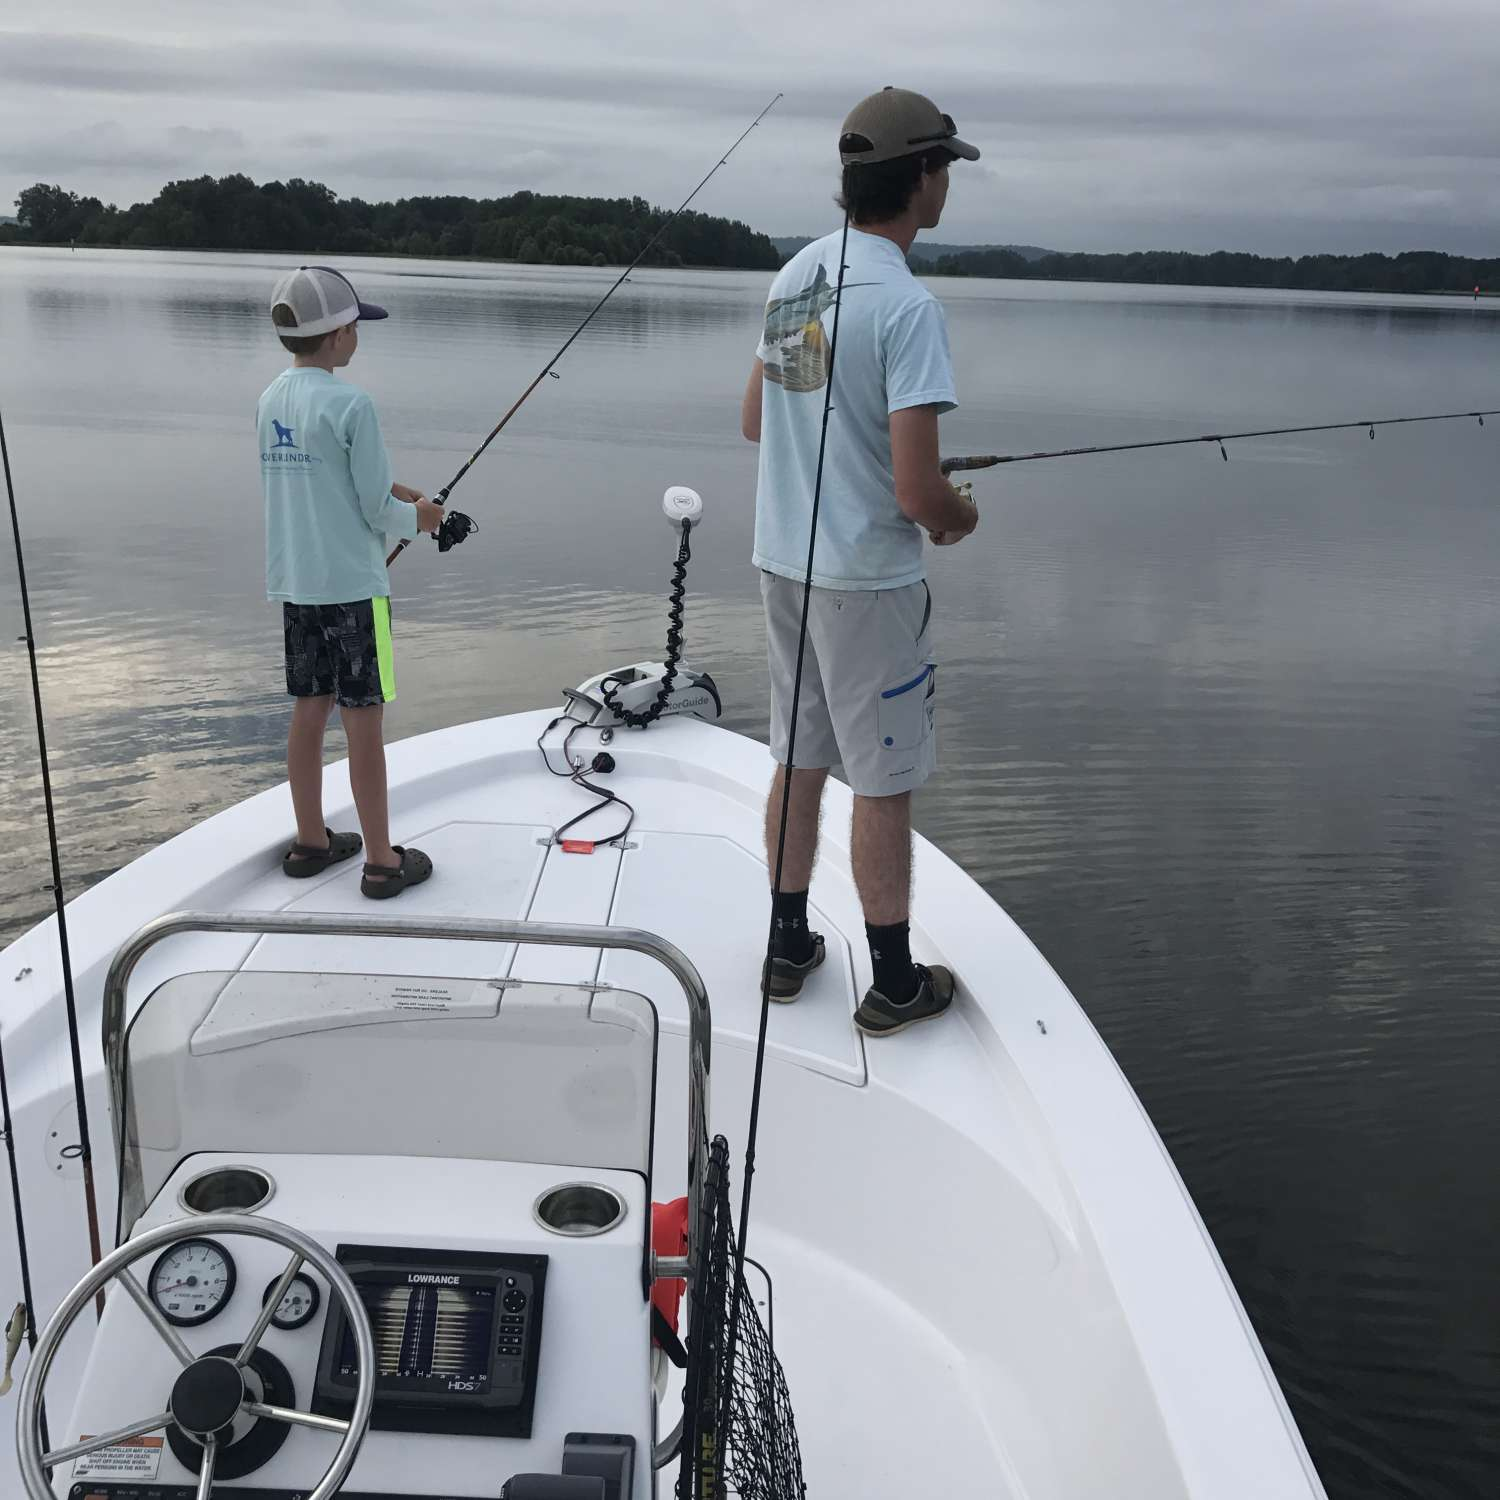 Title: My Boys - On board their Sportsman Island Bay 20 Bay Boat - Location: Clio, Alabama. Participating in the Photo Contest #SportsmanAugust2017